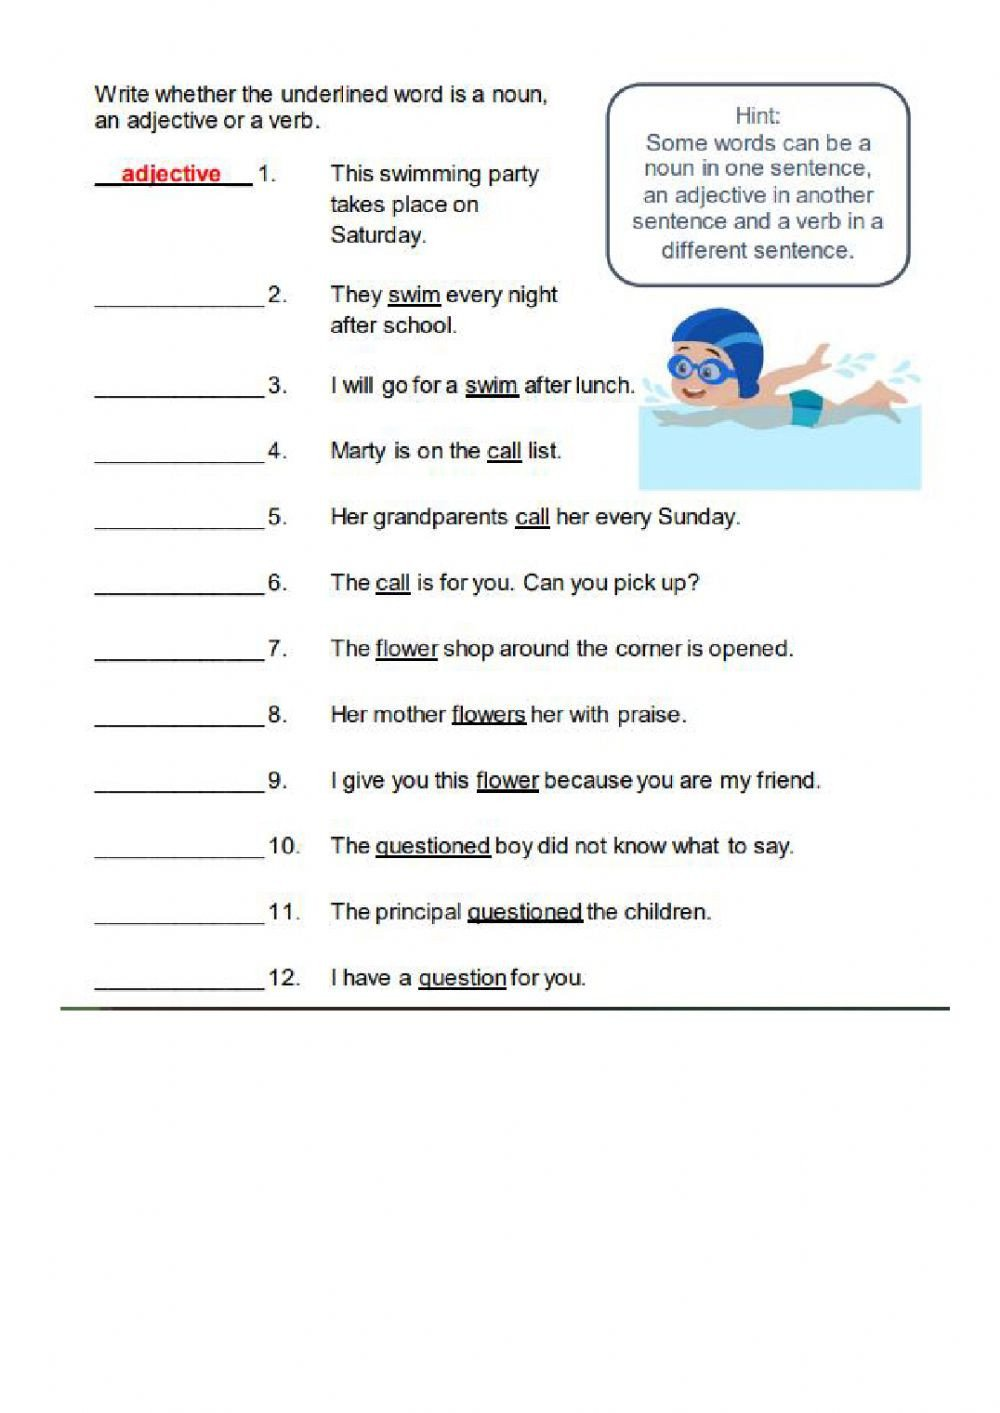 Noun and Verb Worksheets Noun Verb or Adjetive Interactive Worksheet